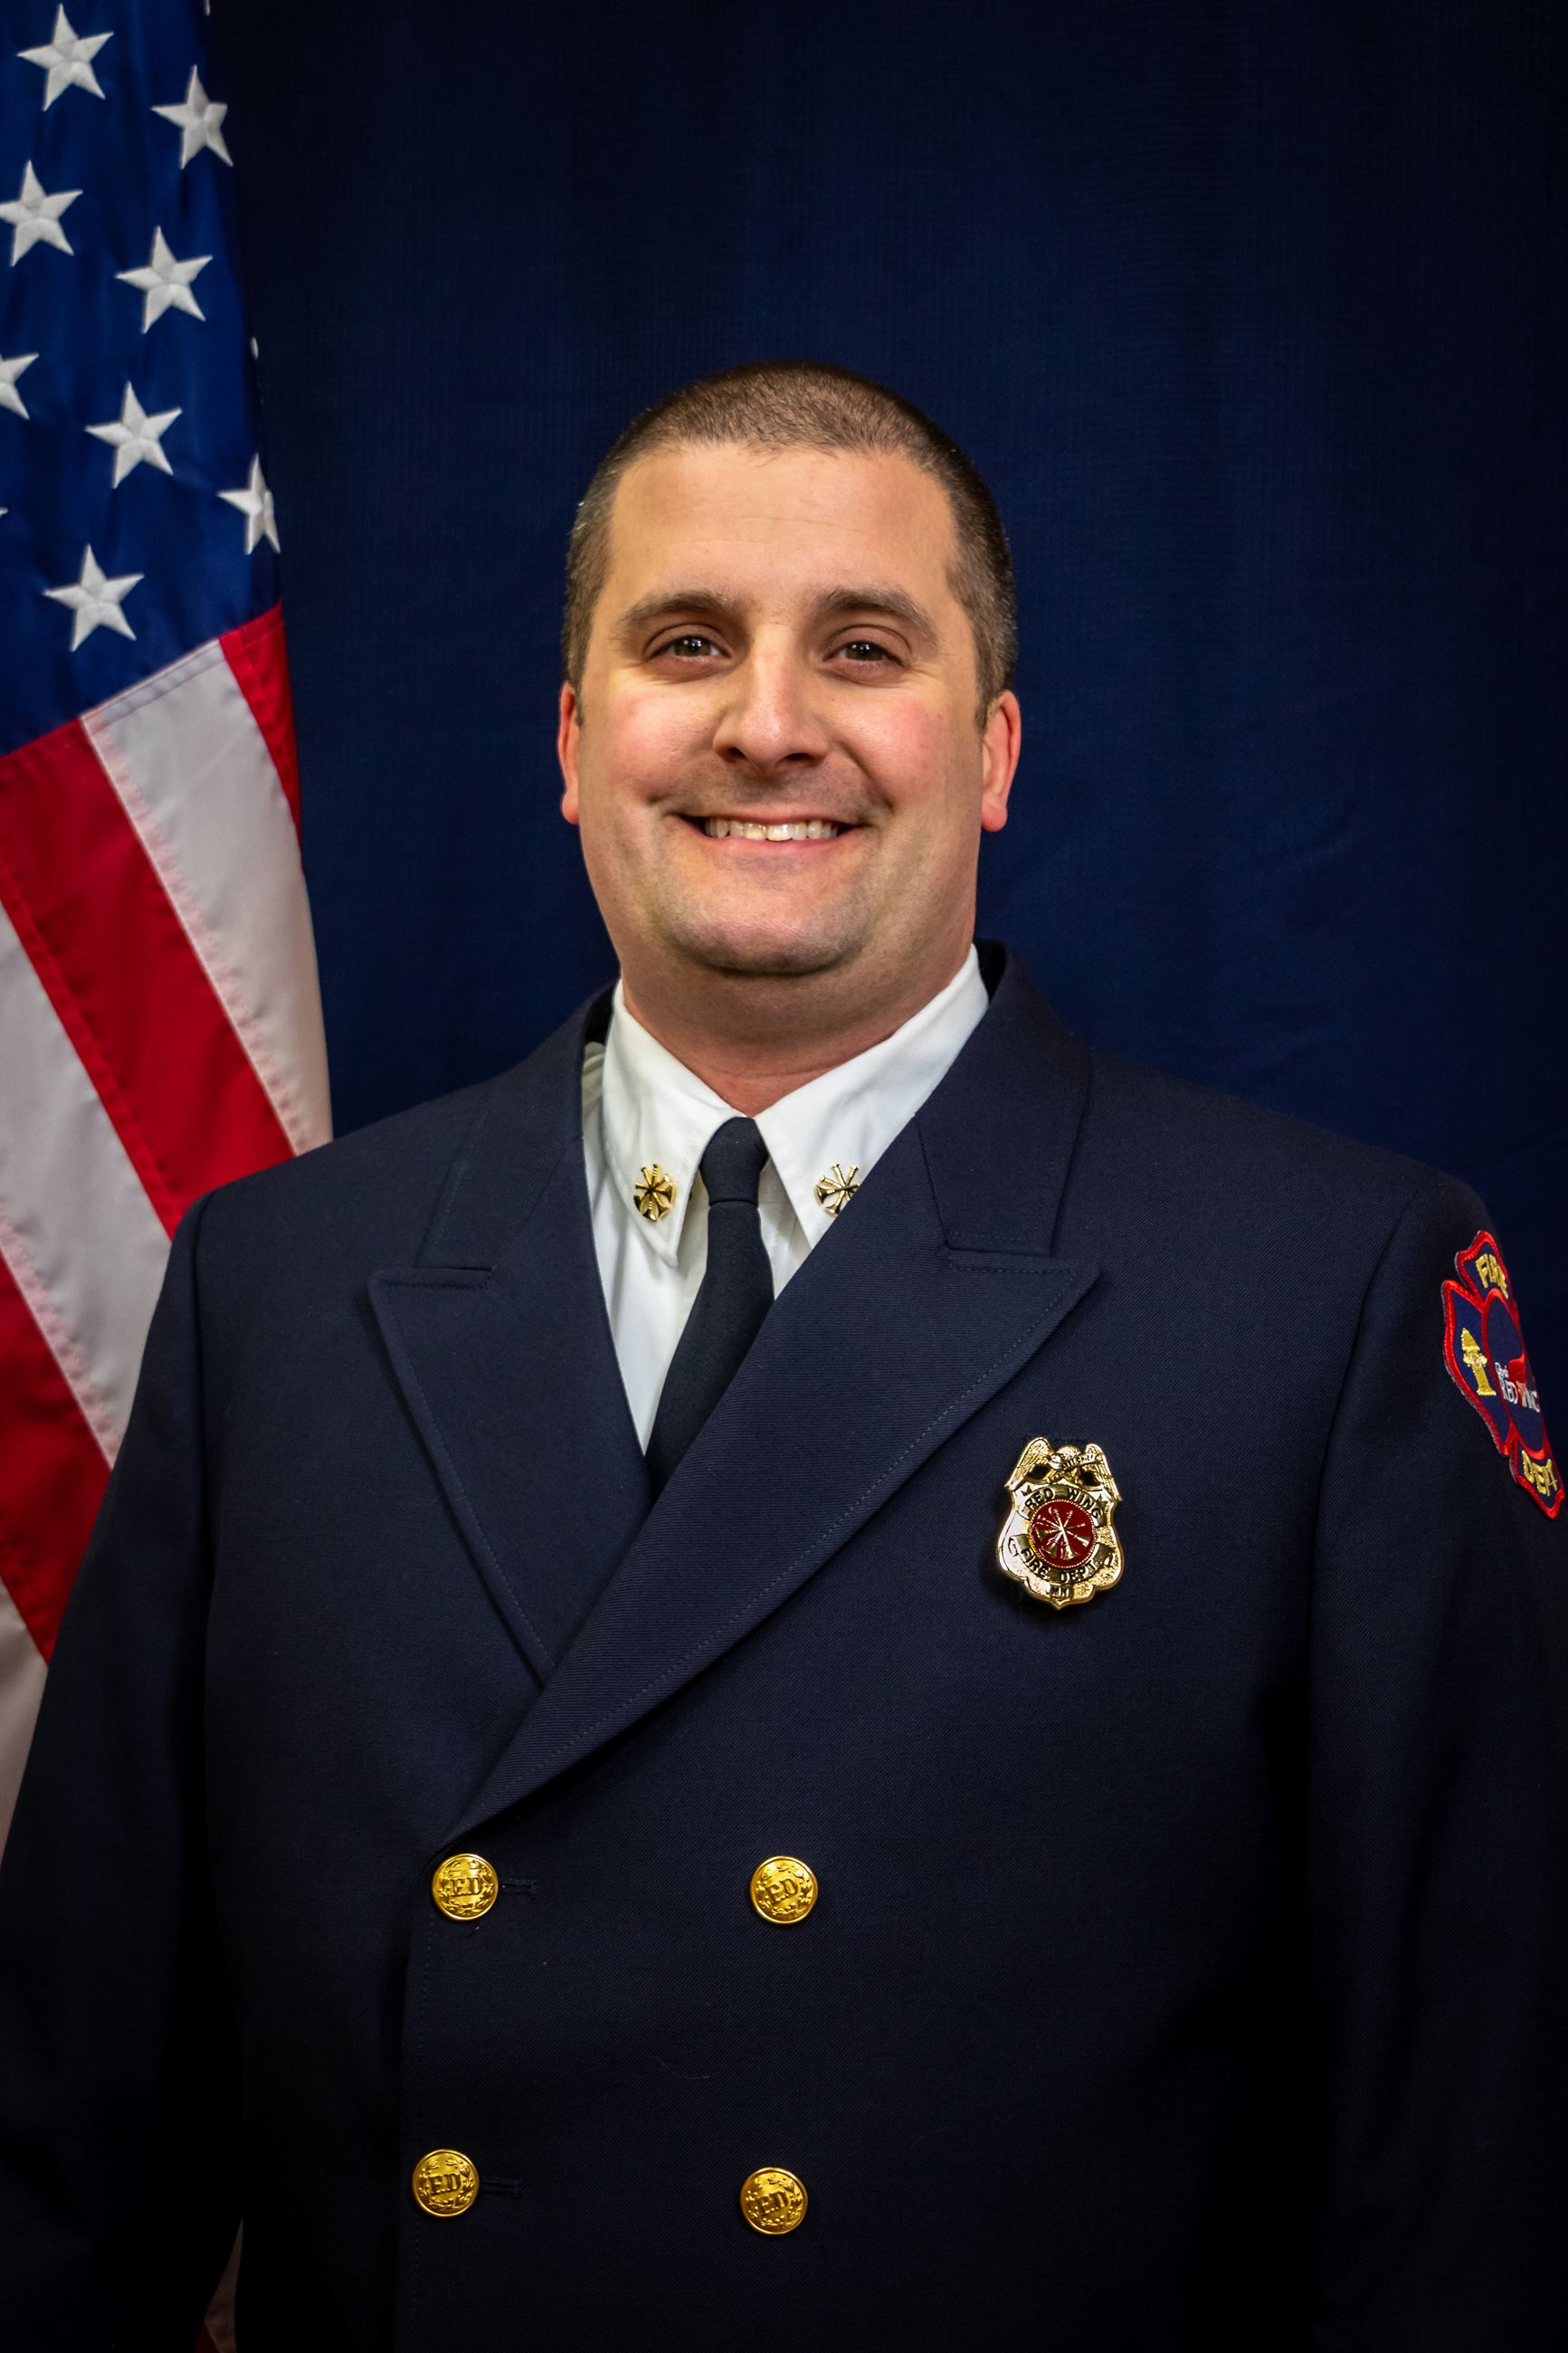 Chief Warner